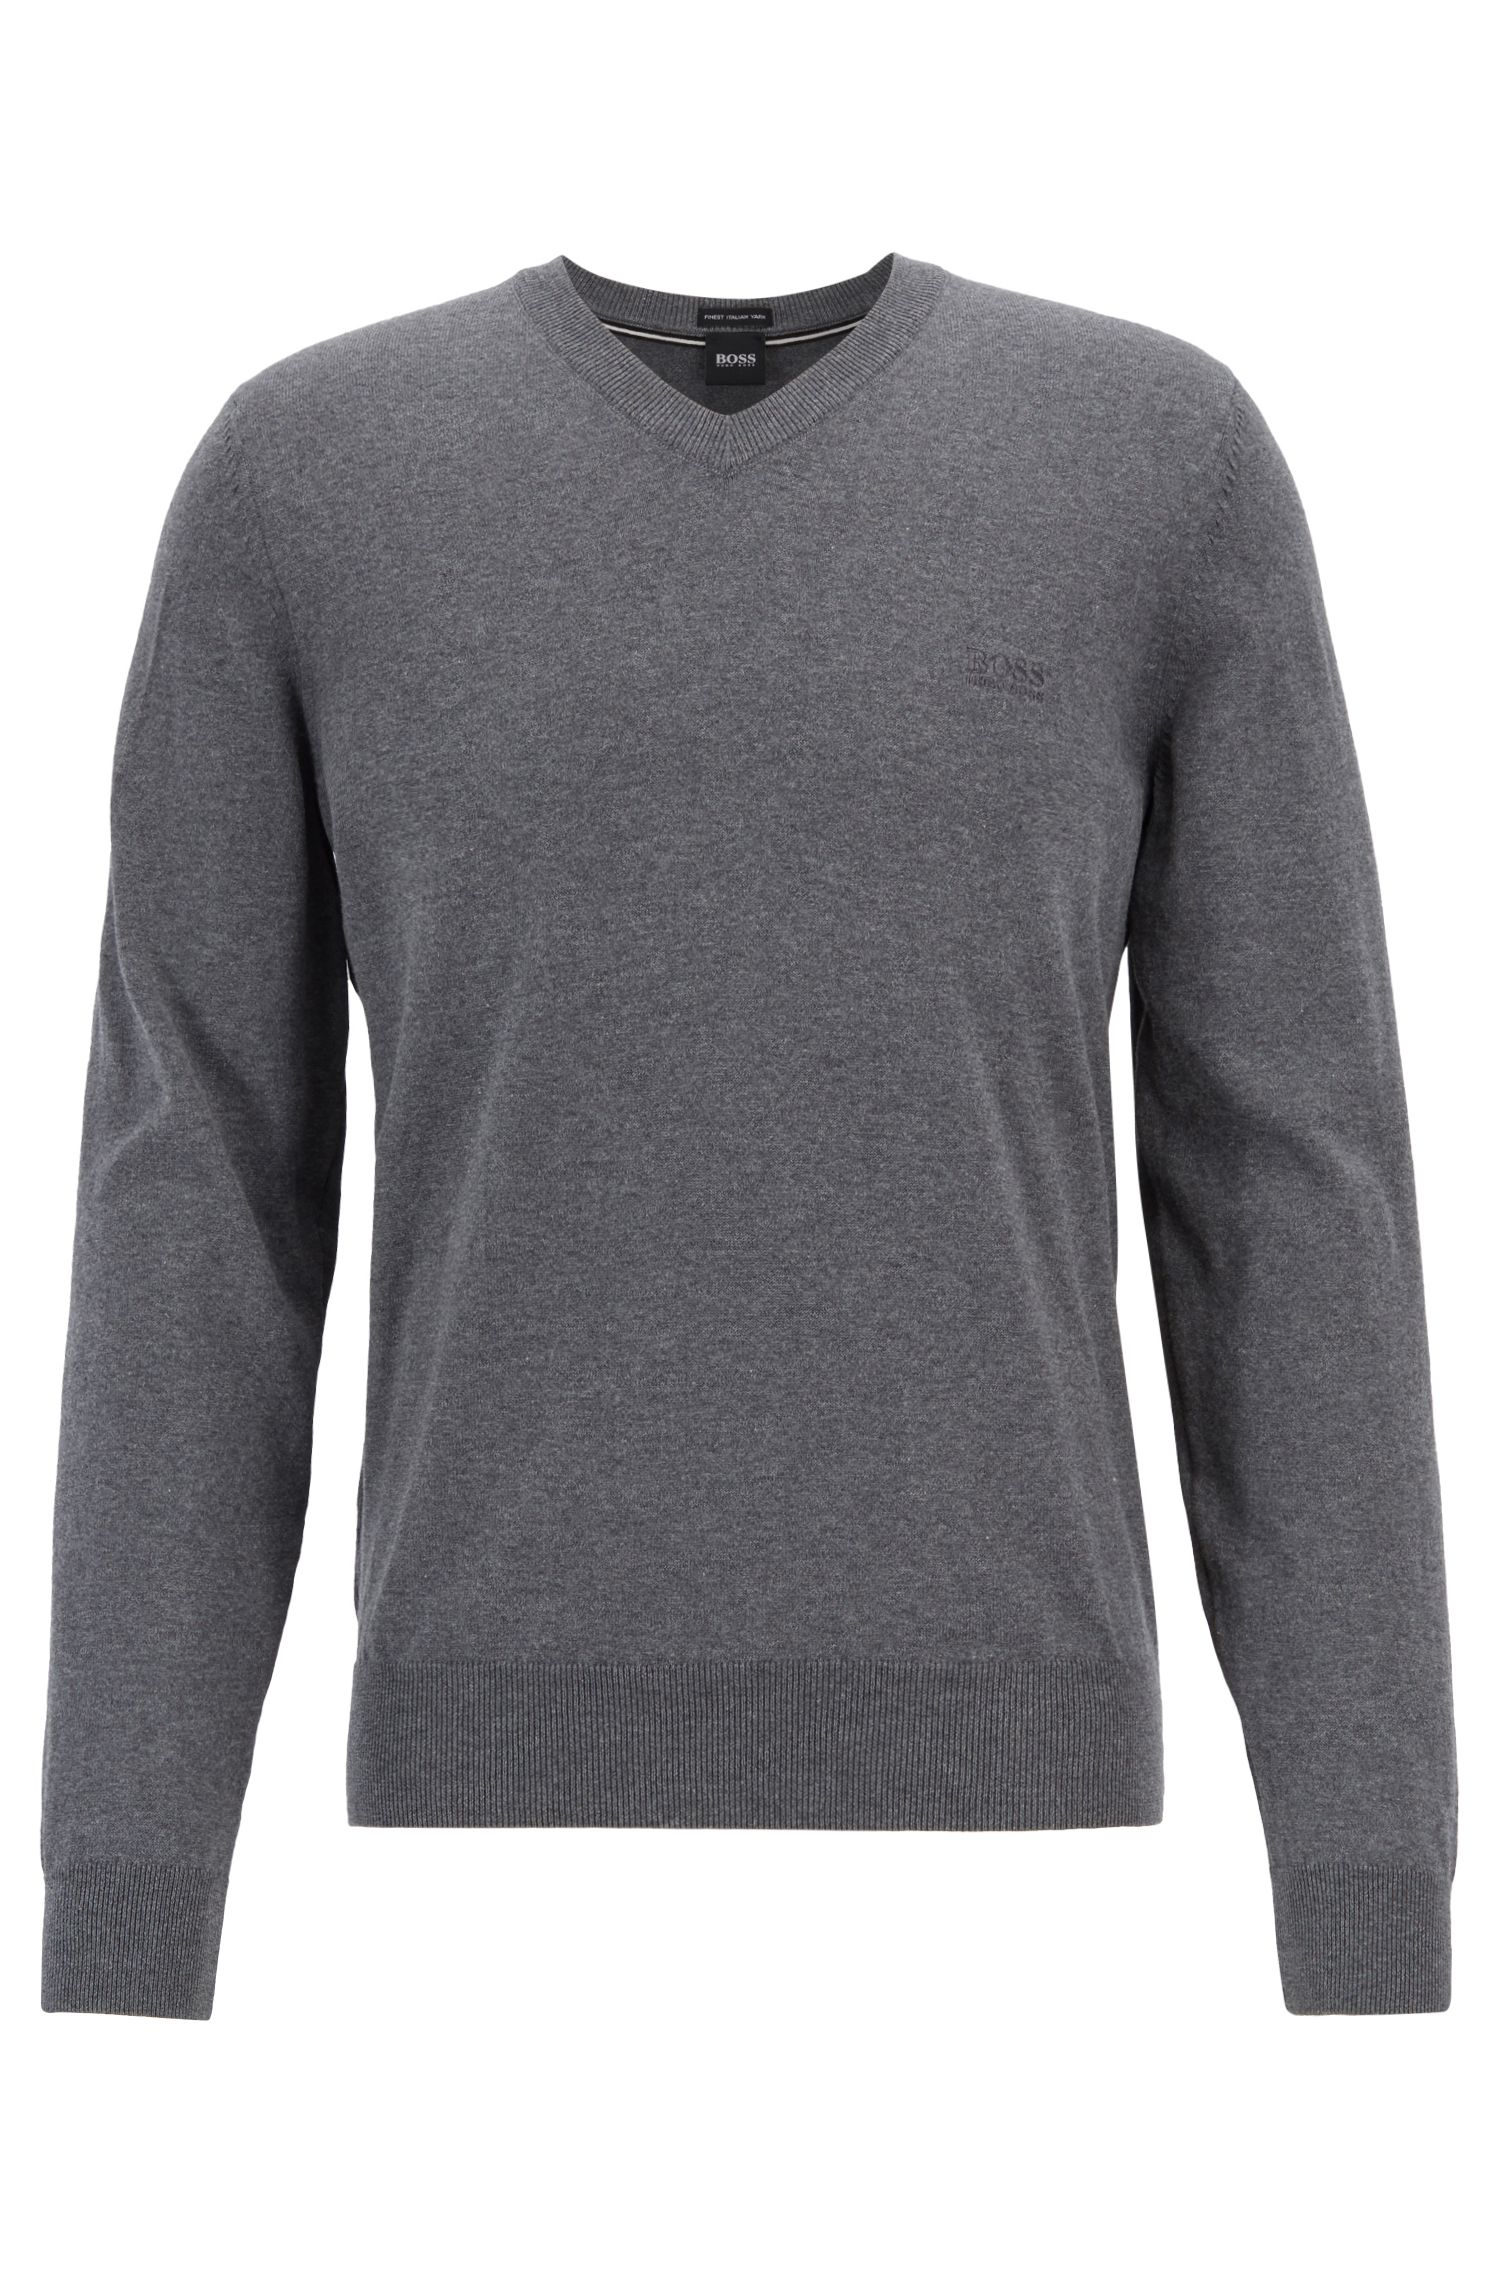 Cotton V-neck sweater with tonal embroidery, Grey